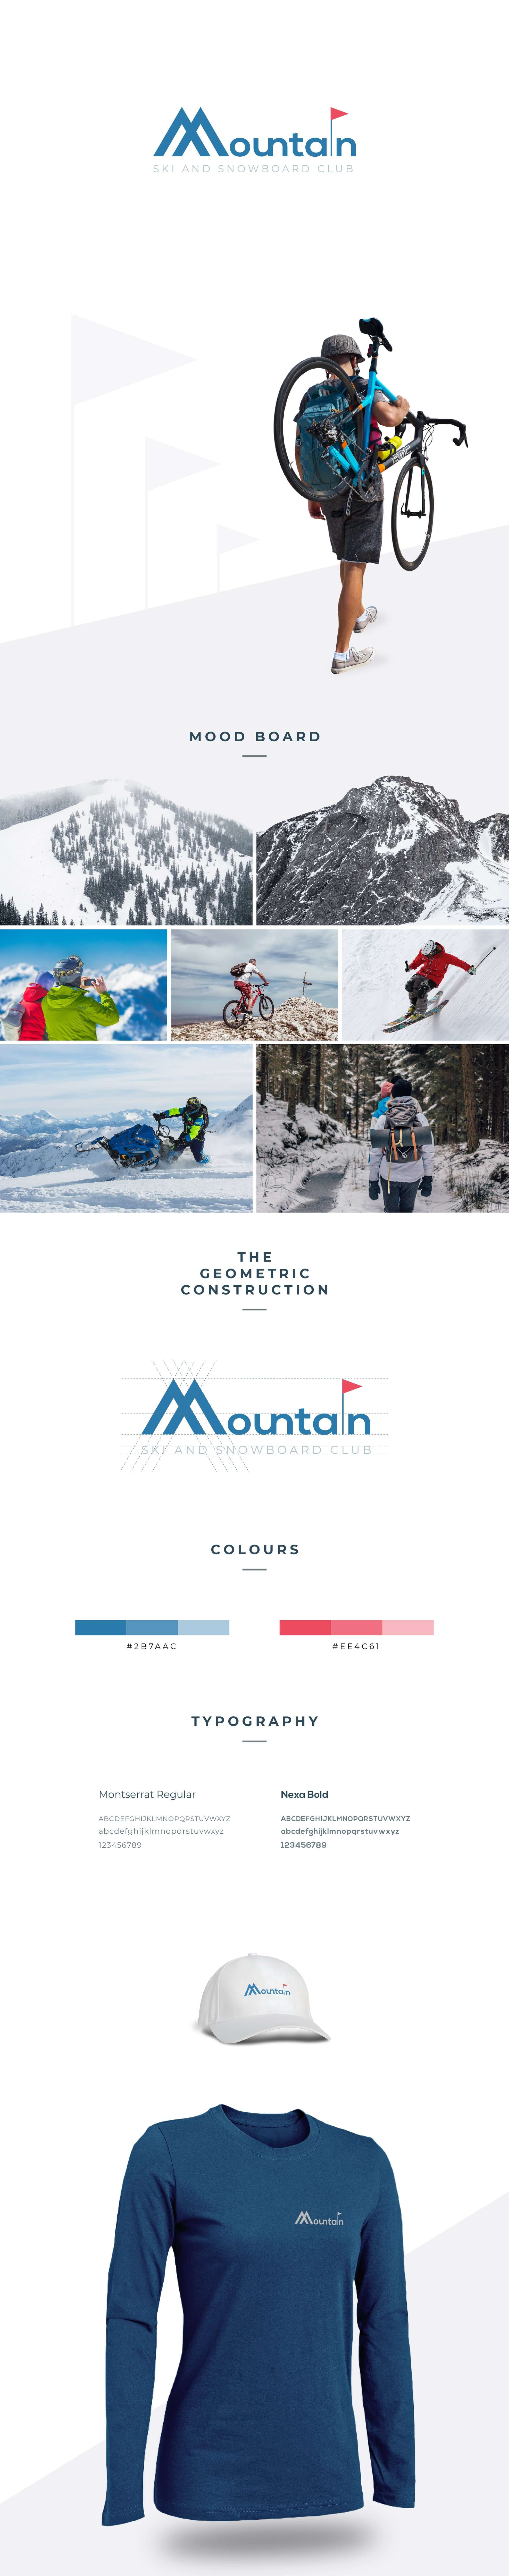 Mountain Snowboard Club branding by sajid sulaiman - Digital Media Production